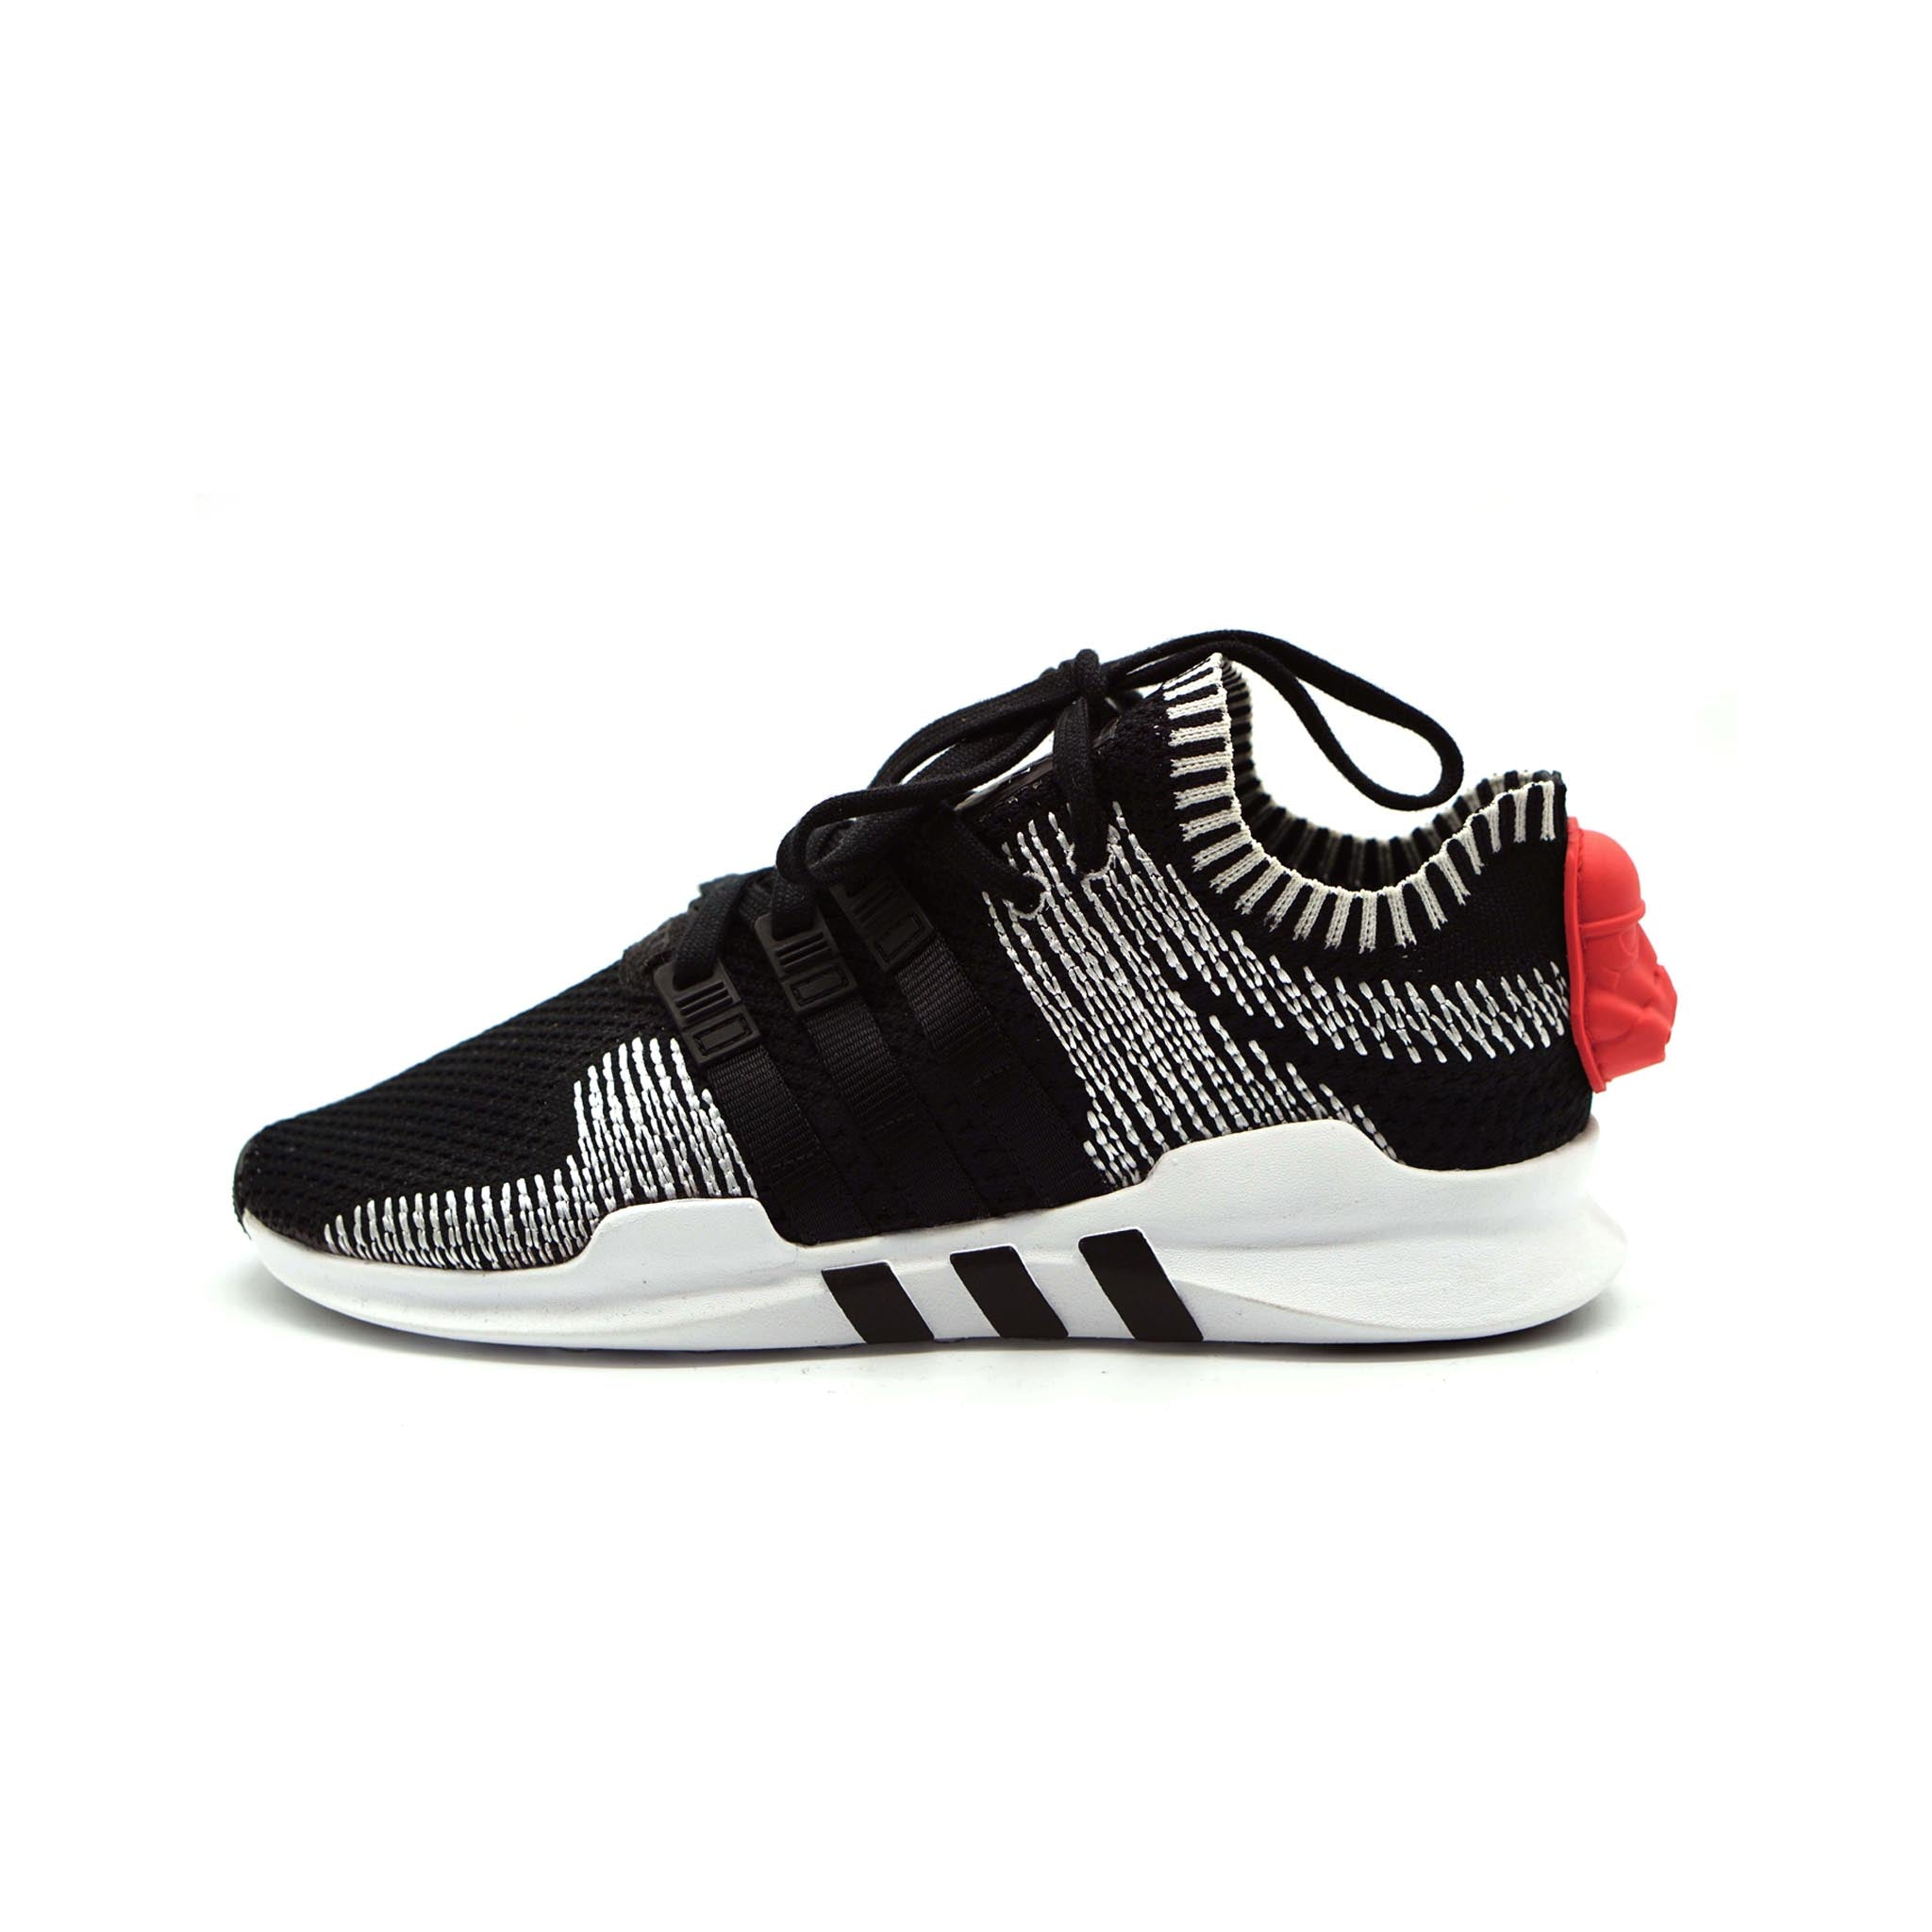 Adidas EQT black: REWORKED Trupa